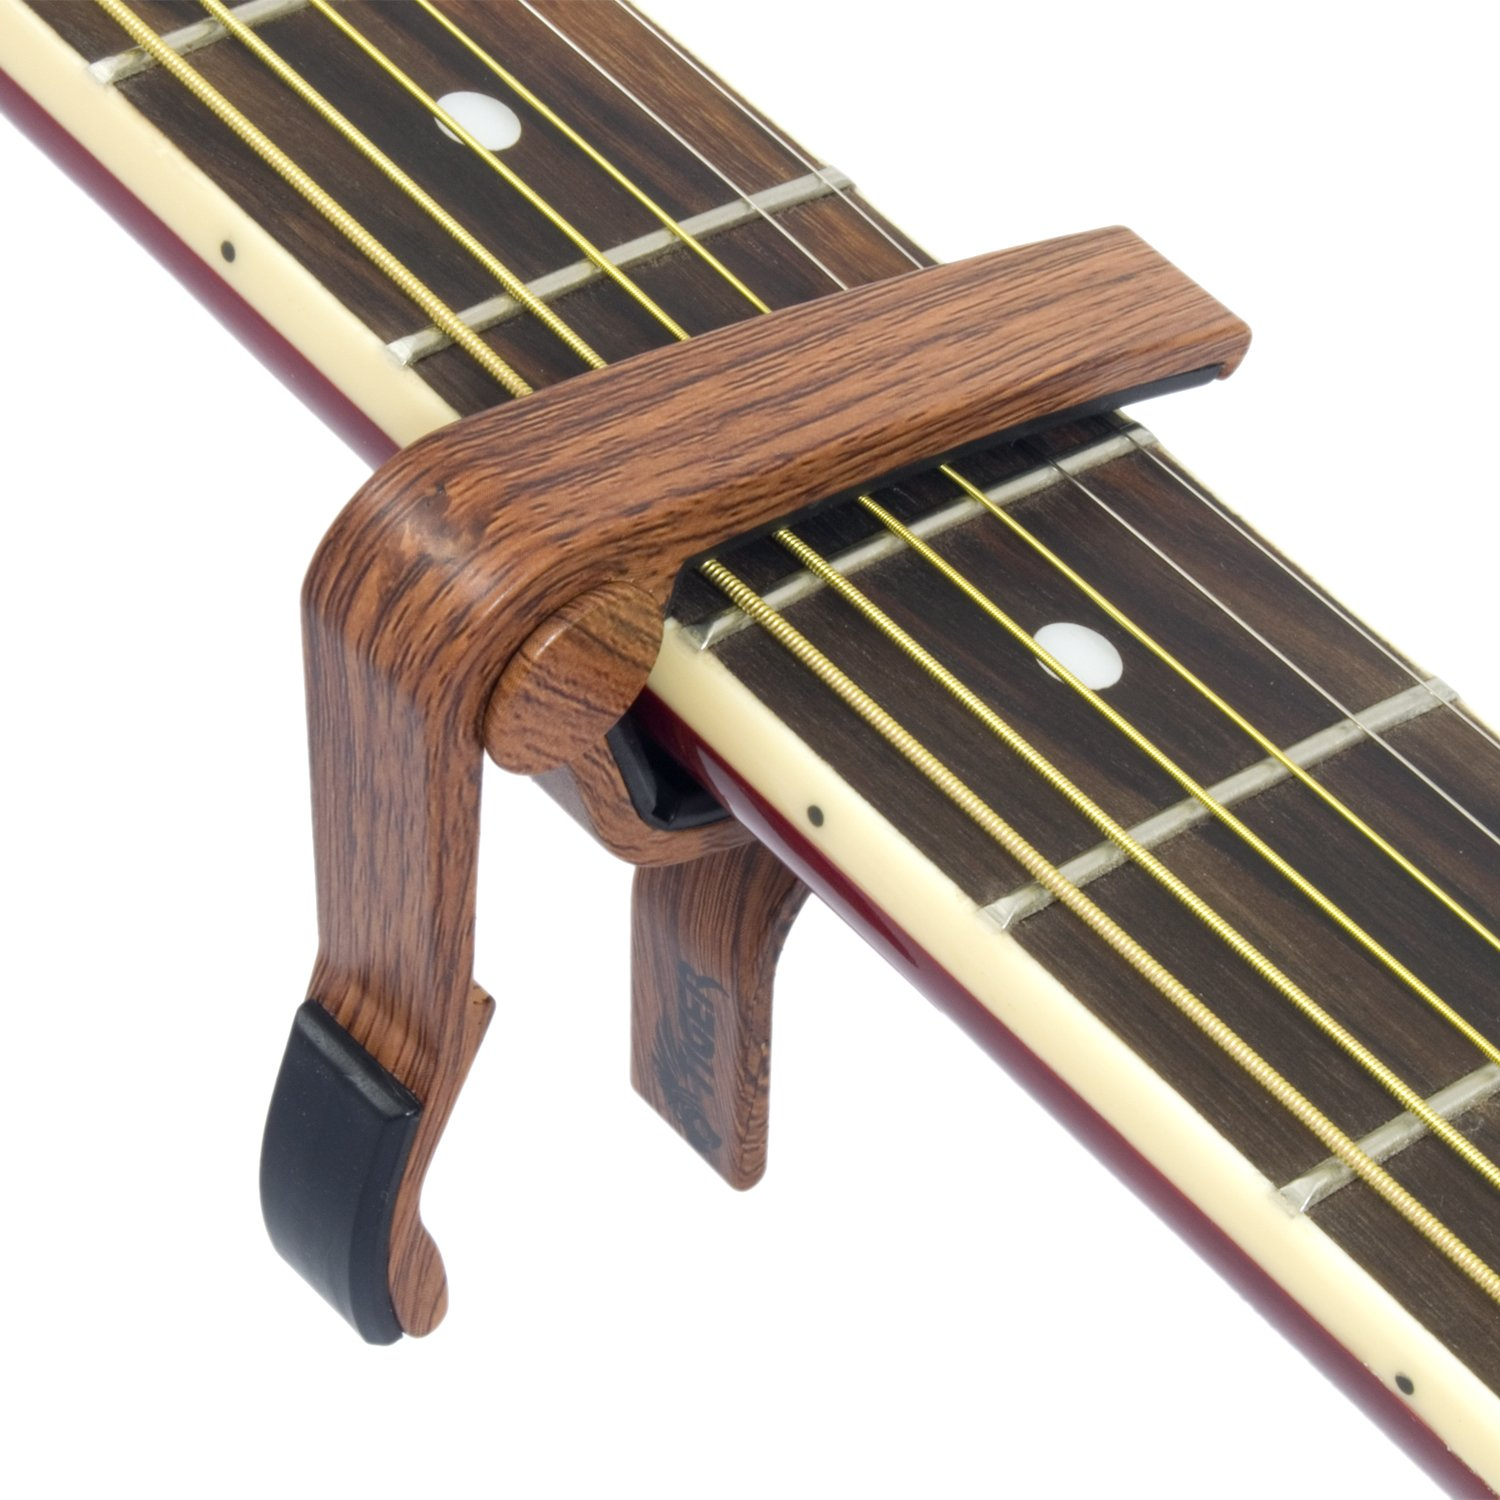 tiger trigger capo with a dark wood finish wooden finish guitar